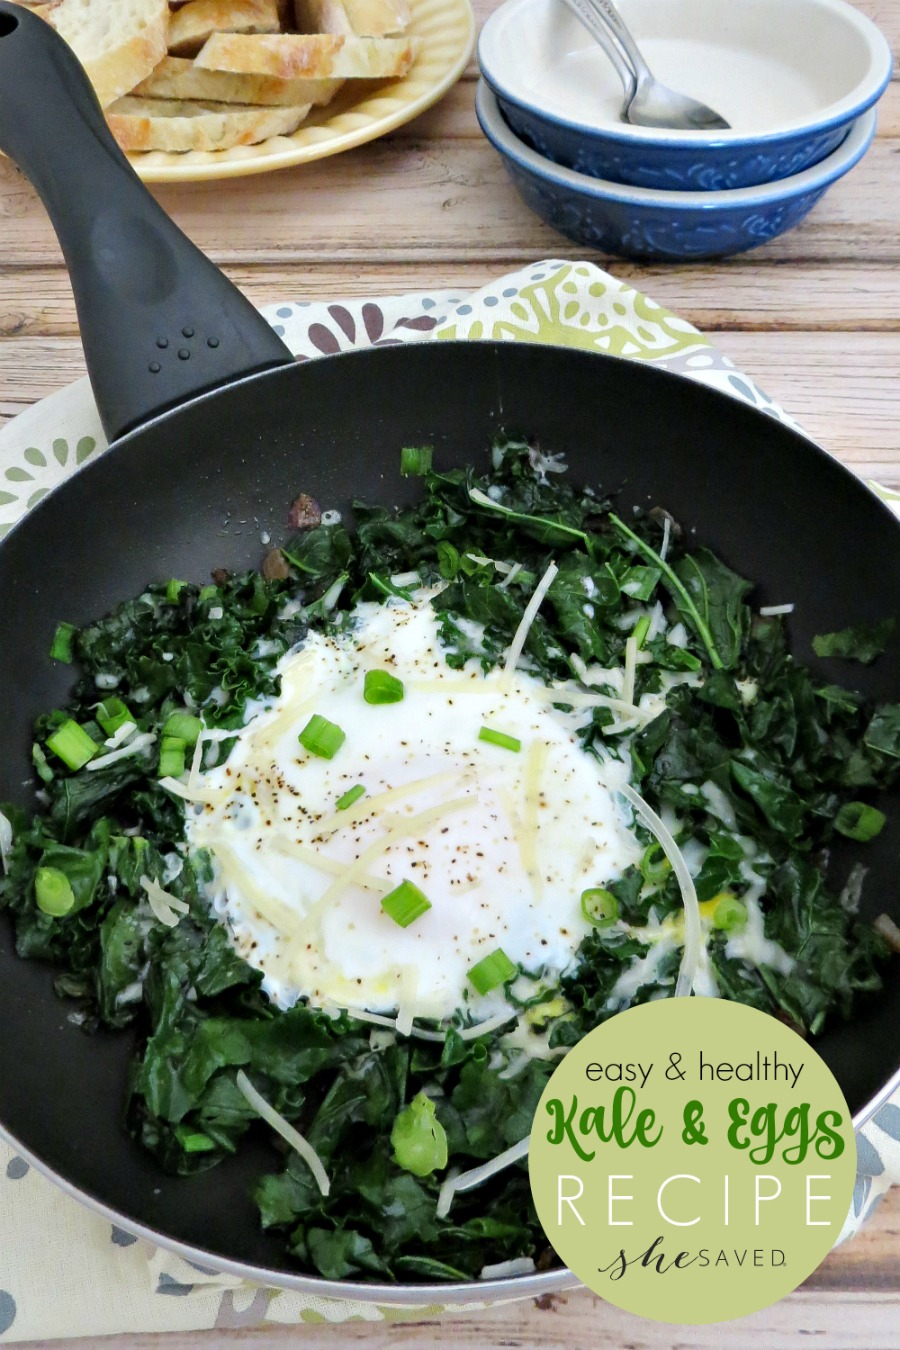 This quick and easy Kale and Eggs recipe will be a favorite for healthy starts in the morning!